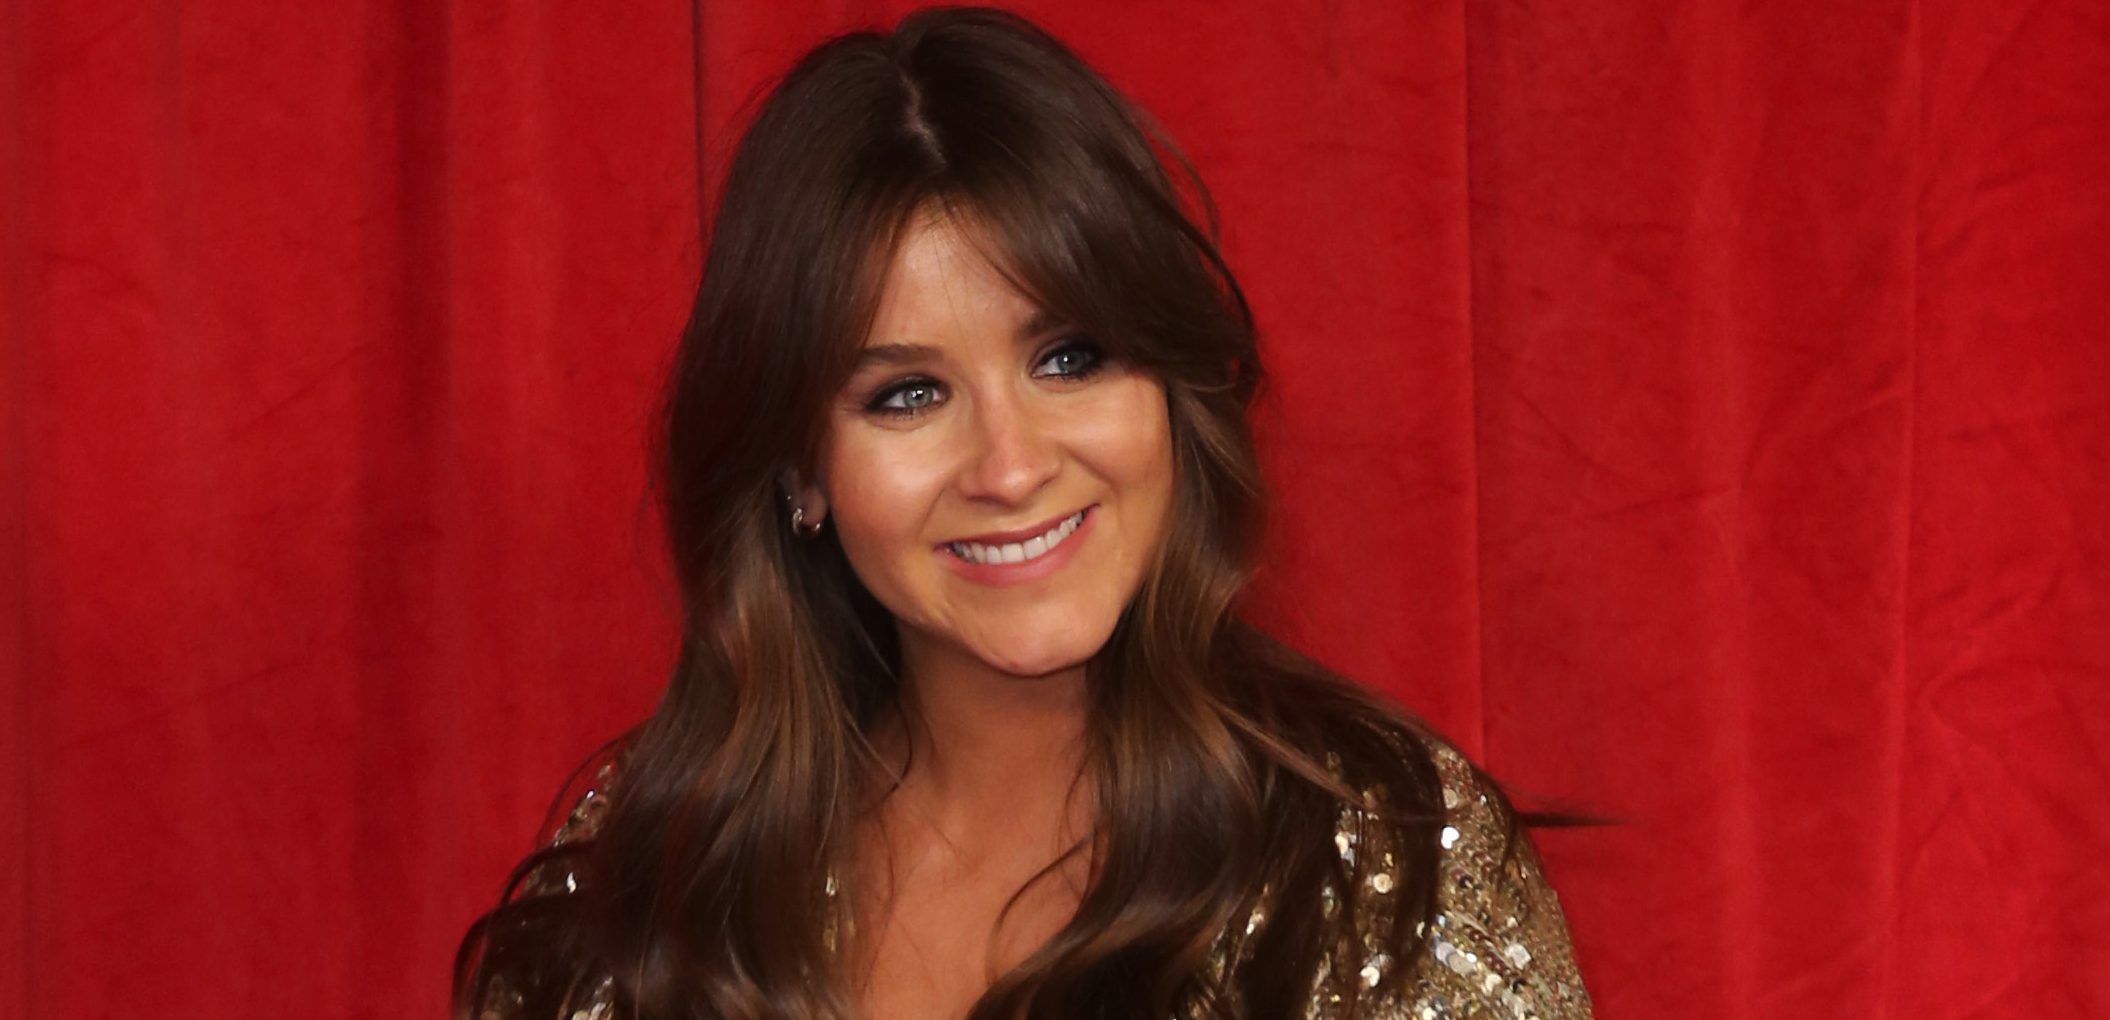 Brooke Vincent cries as she says goodbye to Coronation Street to go on maternity leave